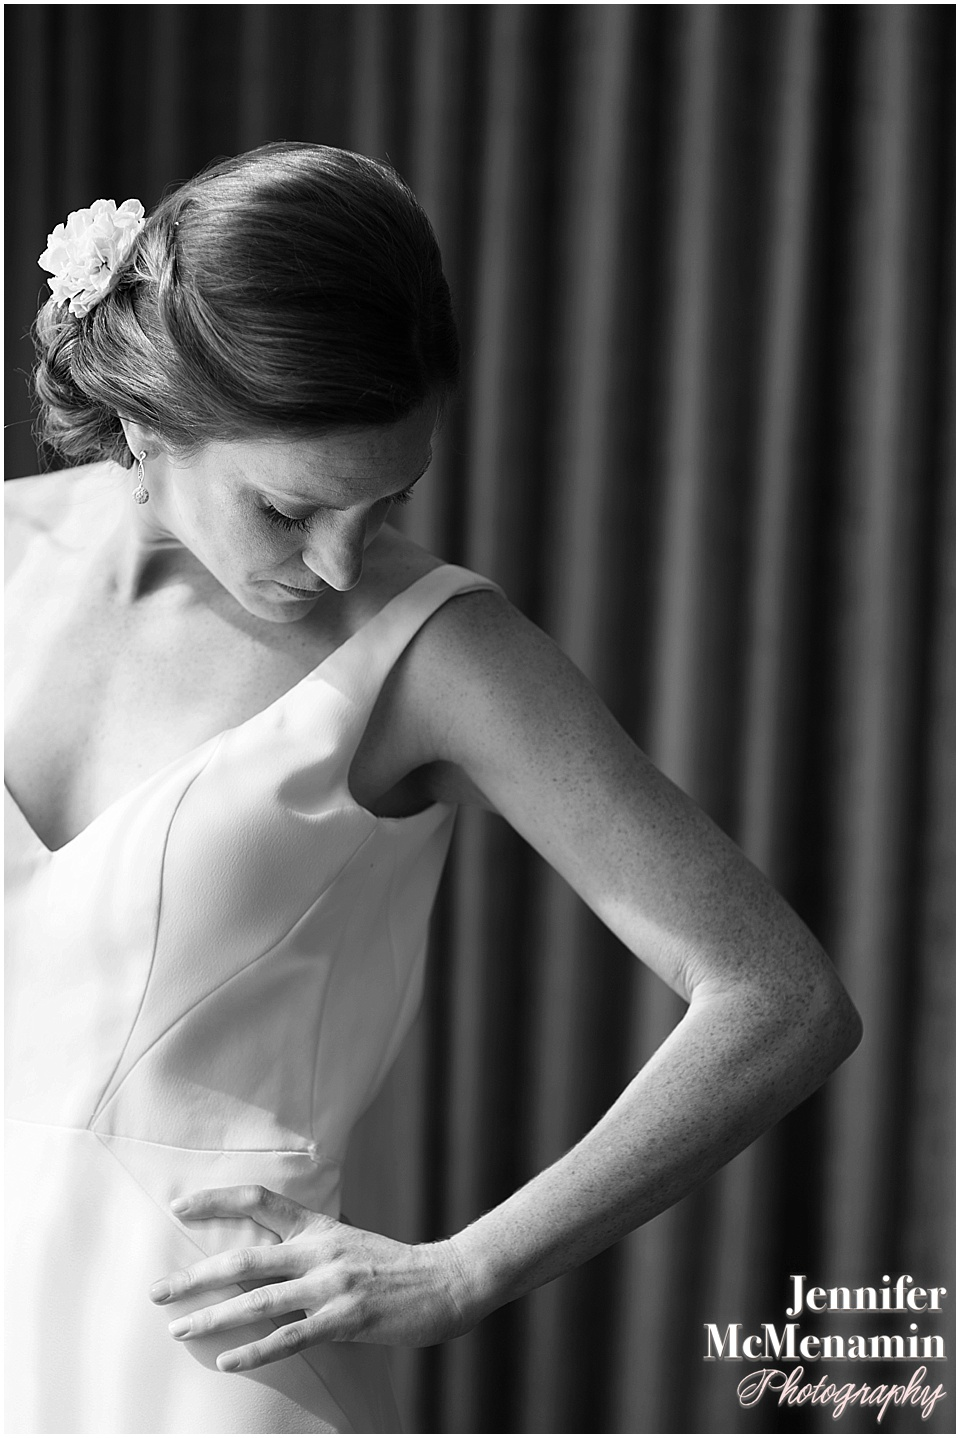 009-Four-Seasons-Baltimore-wedding-Jennifer-McMenamin-Photography